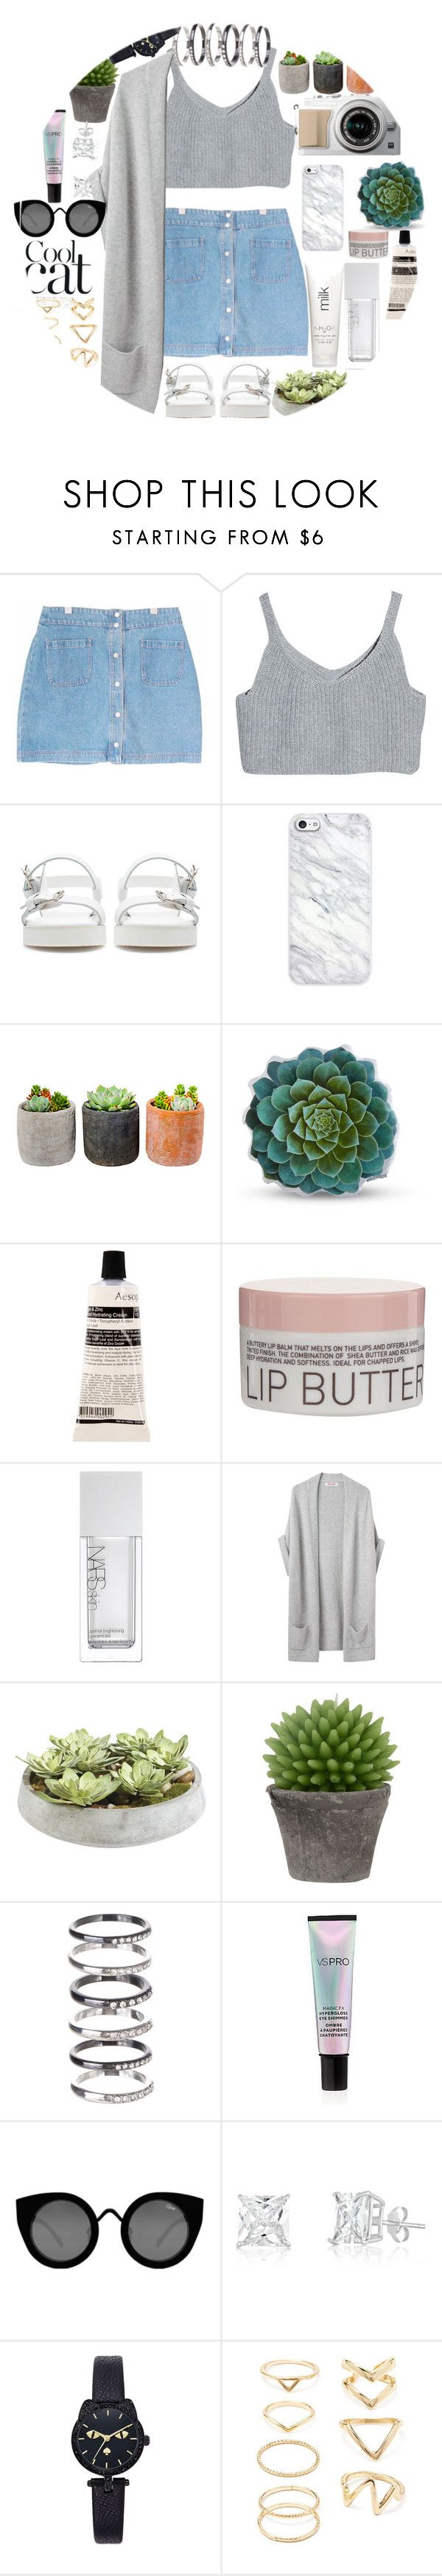 """""""Going out  outfit"""" by infinityforever25 ❤ liked on Polyvore featuring Zara, Shop Succulents, Dot & Bo, Aesop, Korres, NARS Cosmetics, Organic by John Patrick, H2O+, Ethan Allen and Broste Copenhagen"""